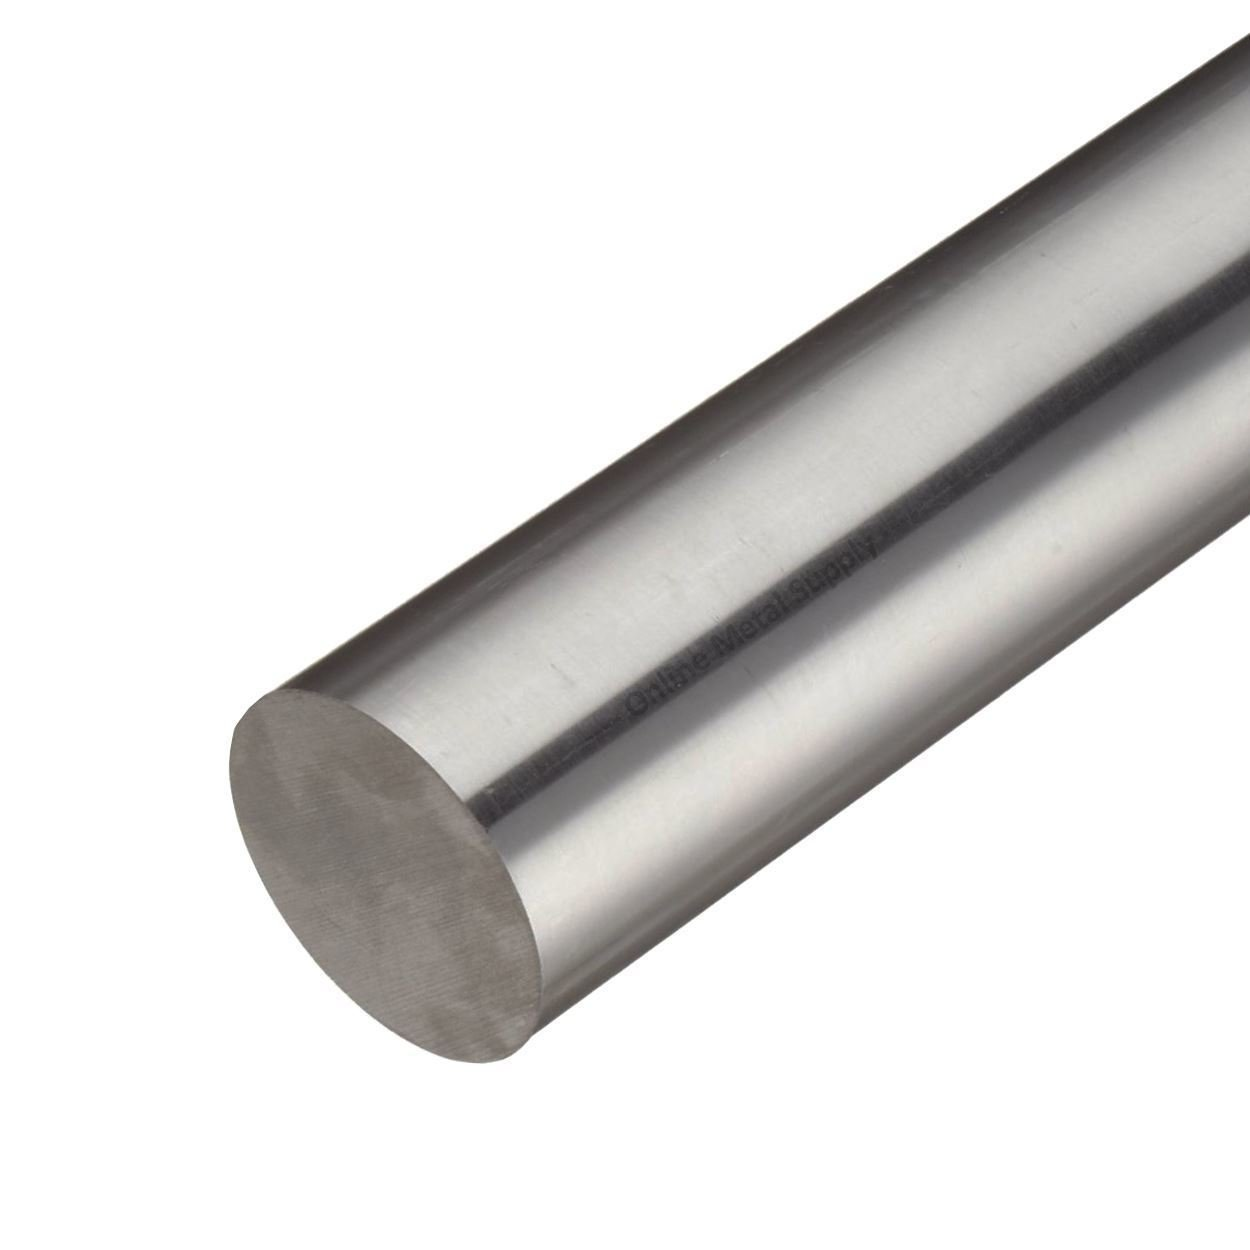 Online Metal Supply Alloy 718 Nickel Round Rod, 1.125 (1-1/8 inch) x 36 inches by Online Metal Supply